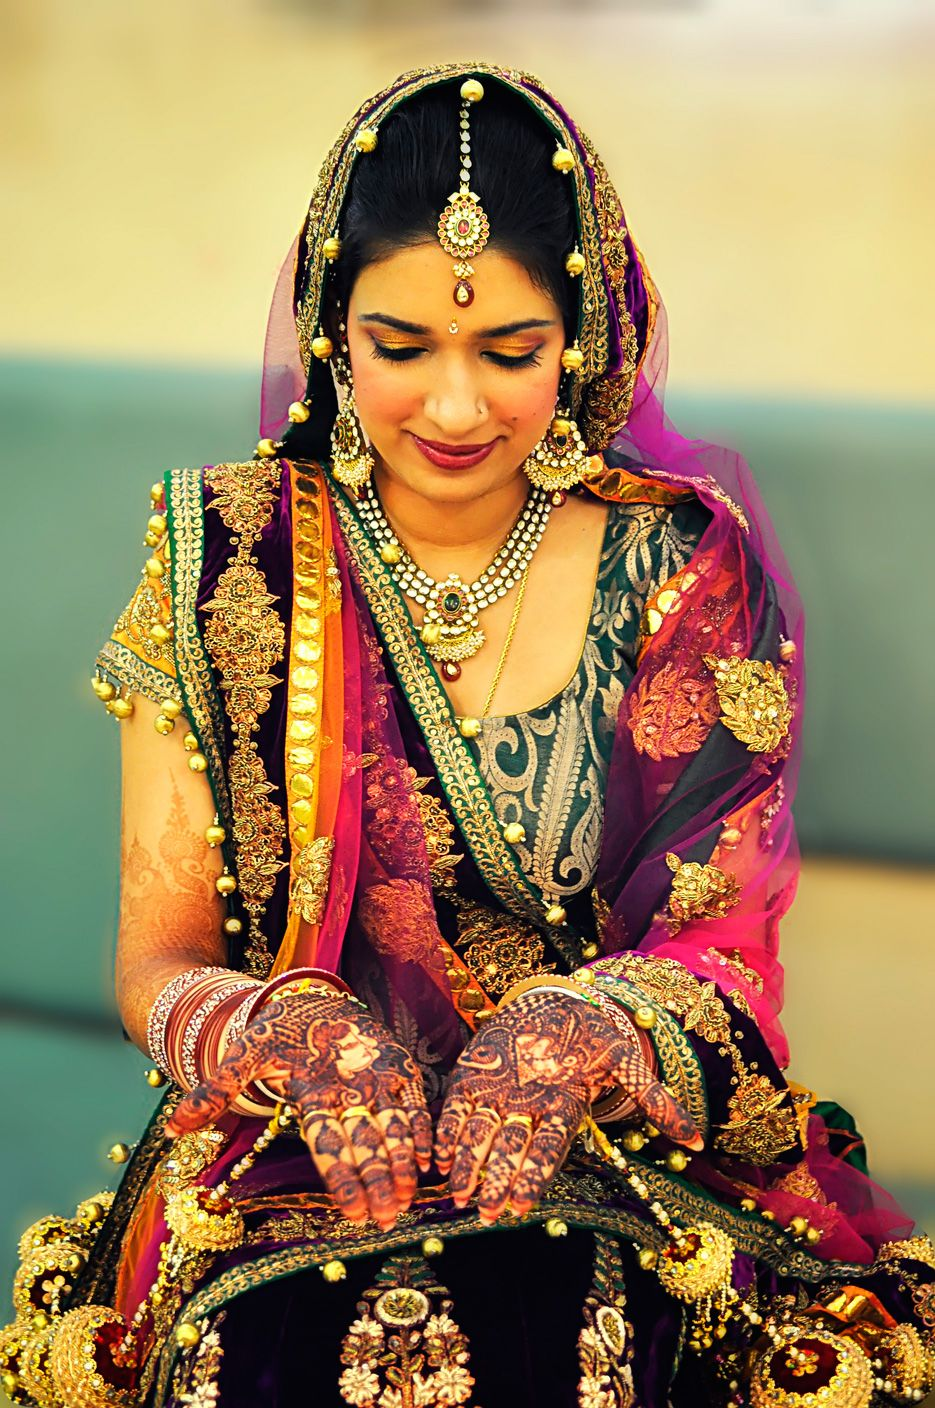 indian wedding photographer photography by naina bharatpriyankaweddingphotography 0 bharat priyanka